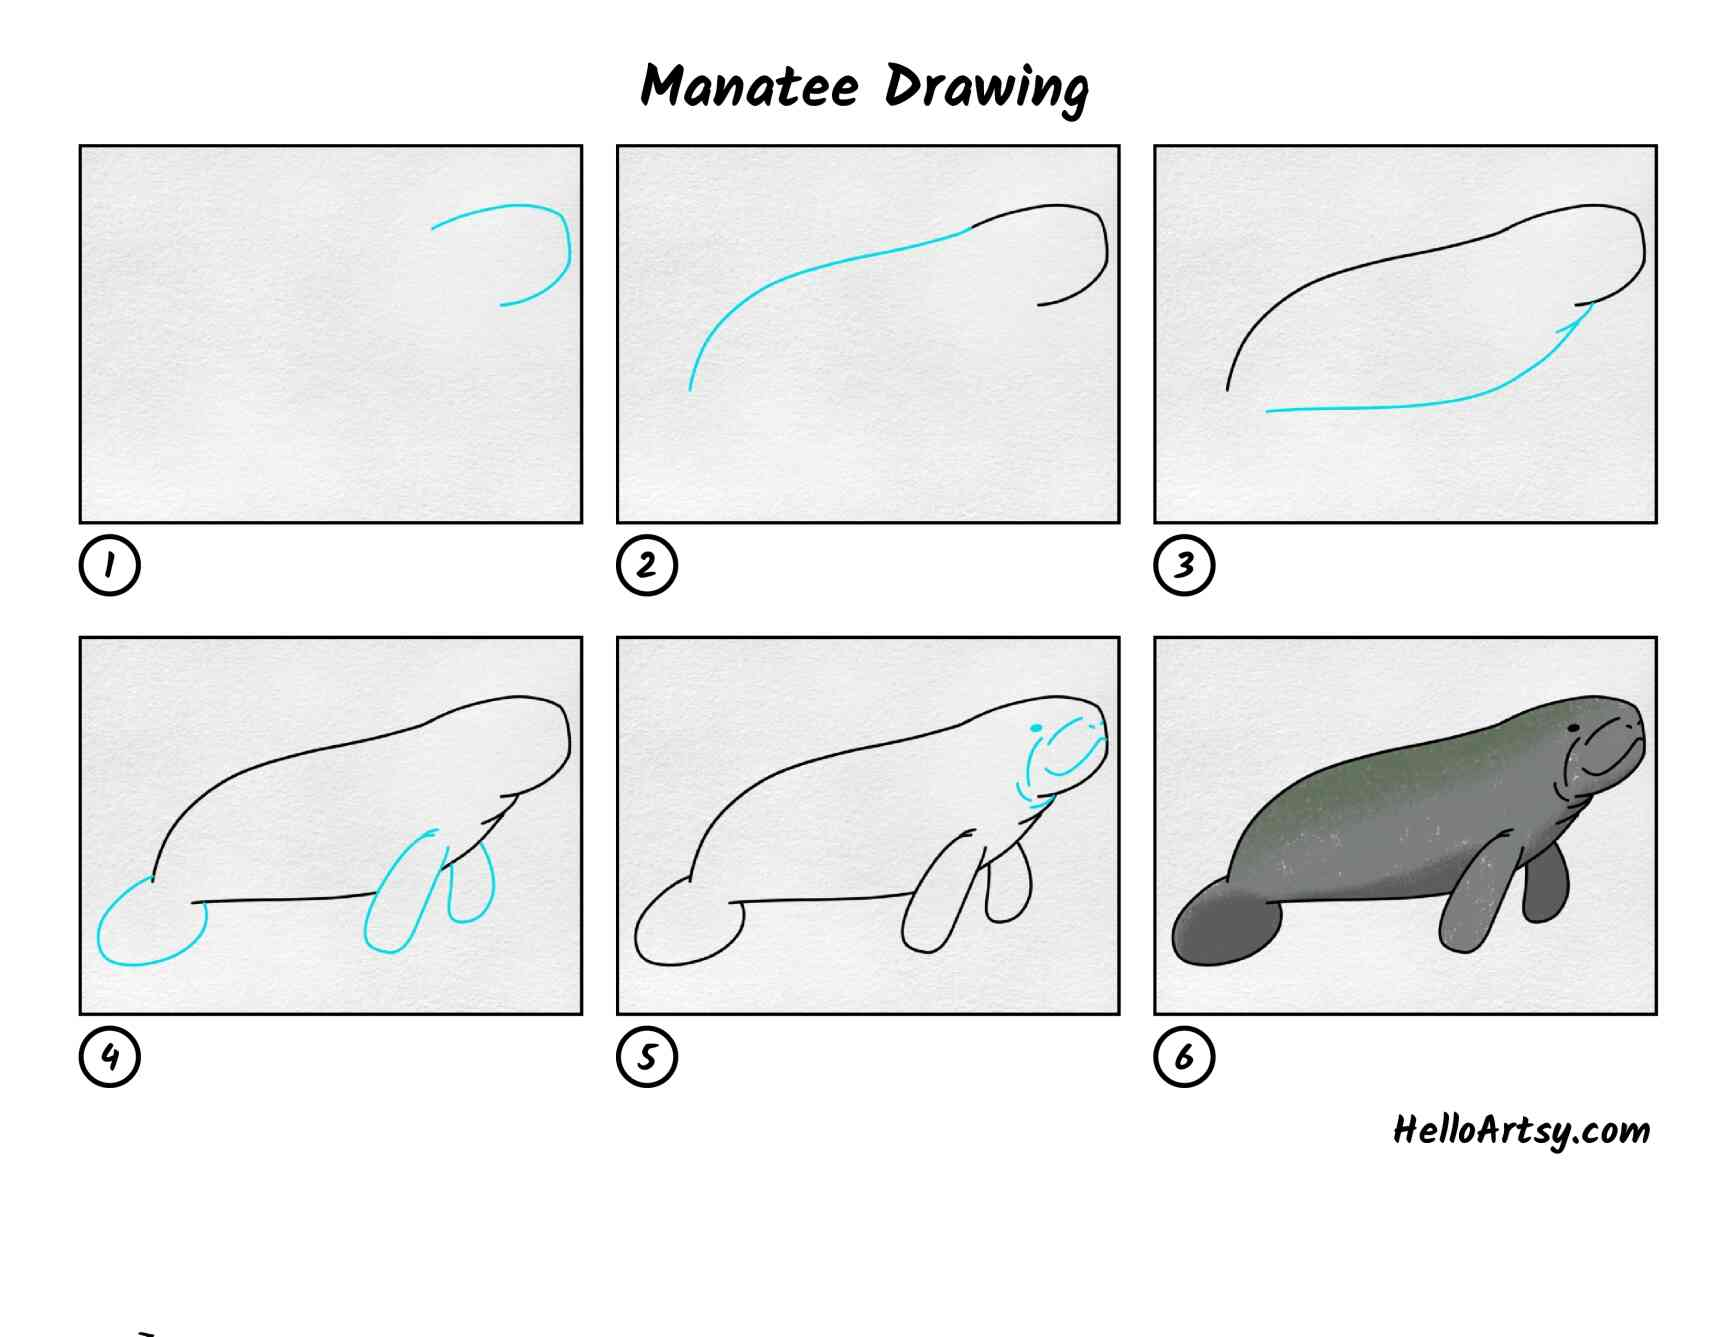 Manatee Drawing: All Steps